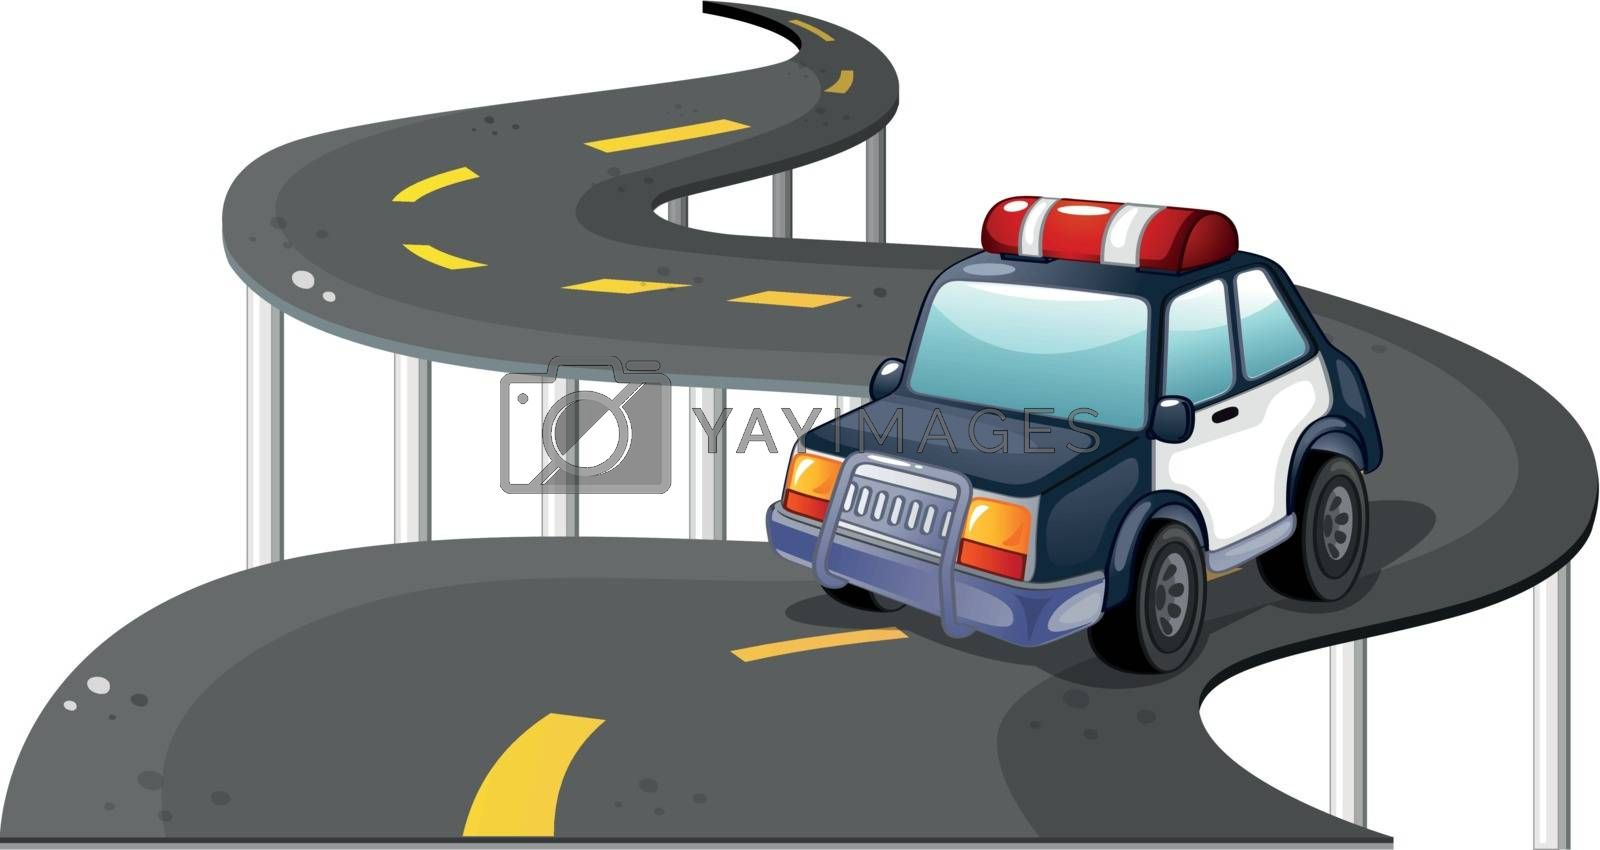 Illustration of a police car at the road on a white background